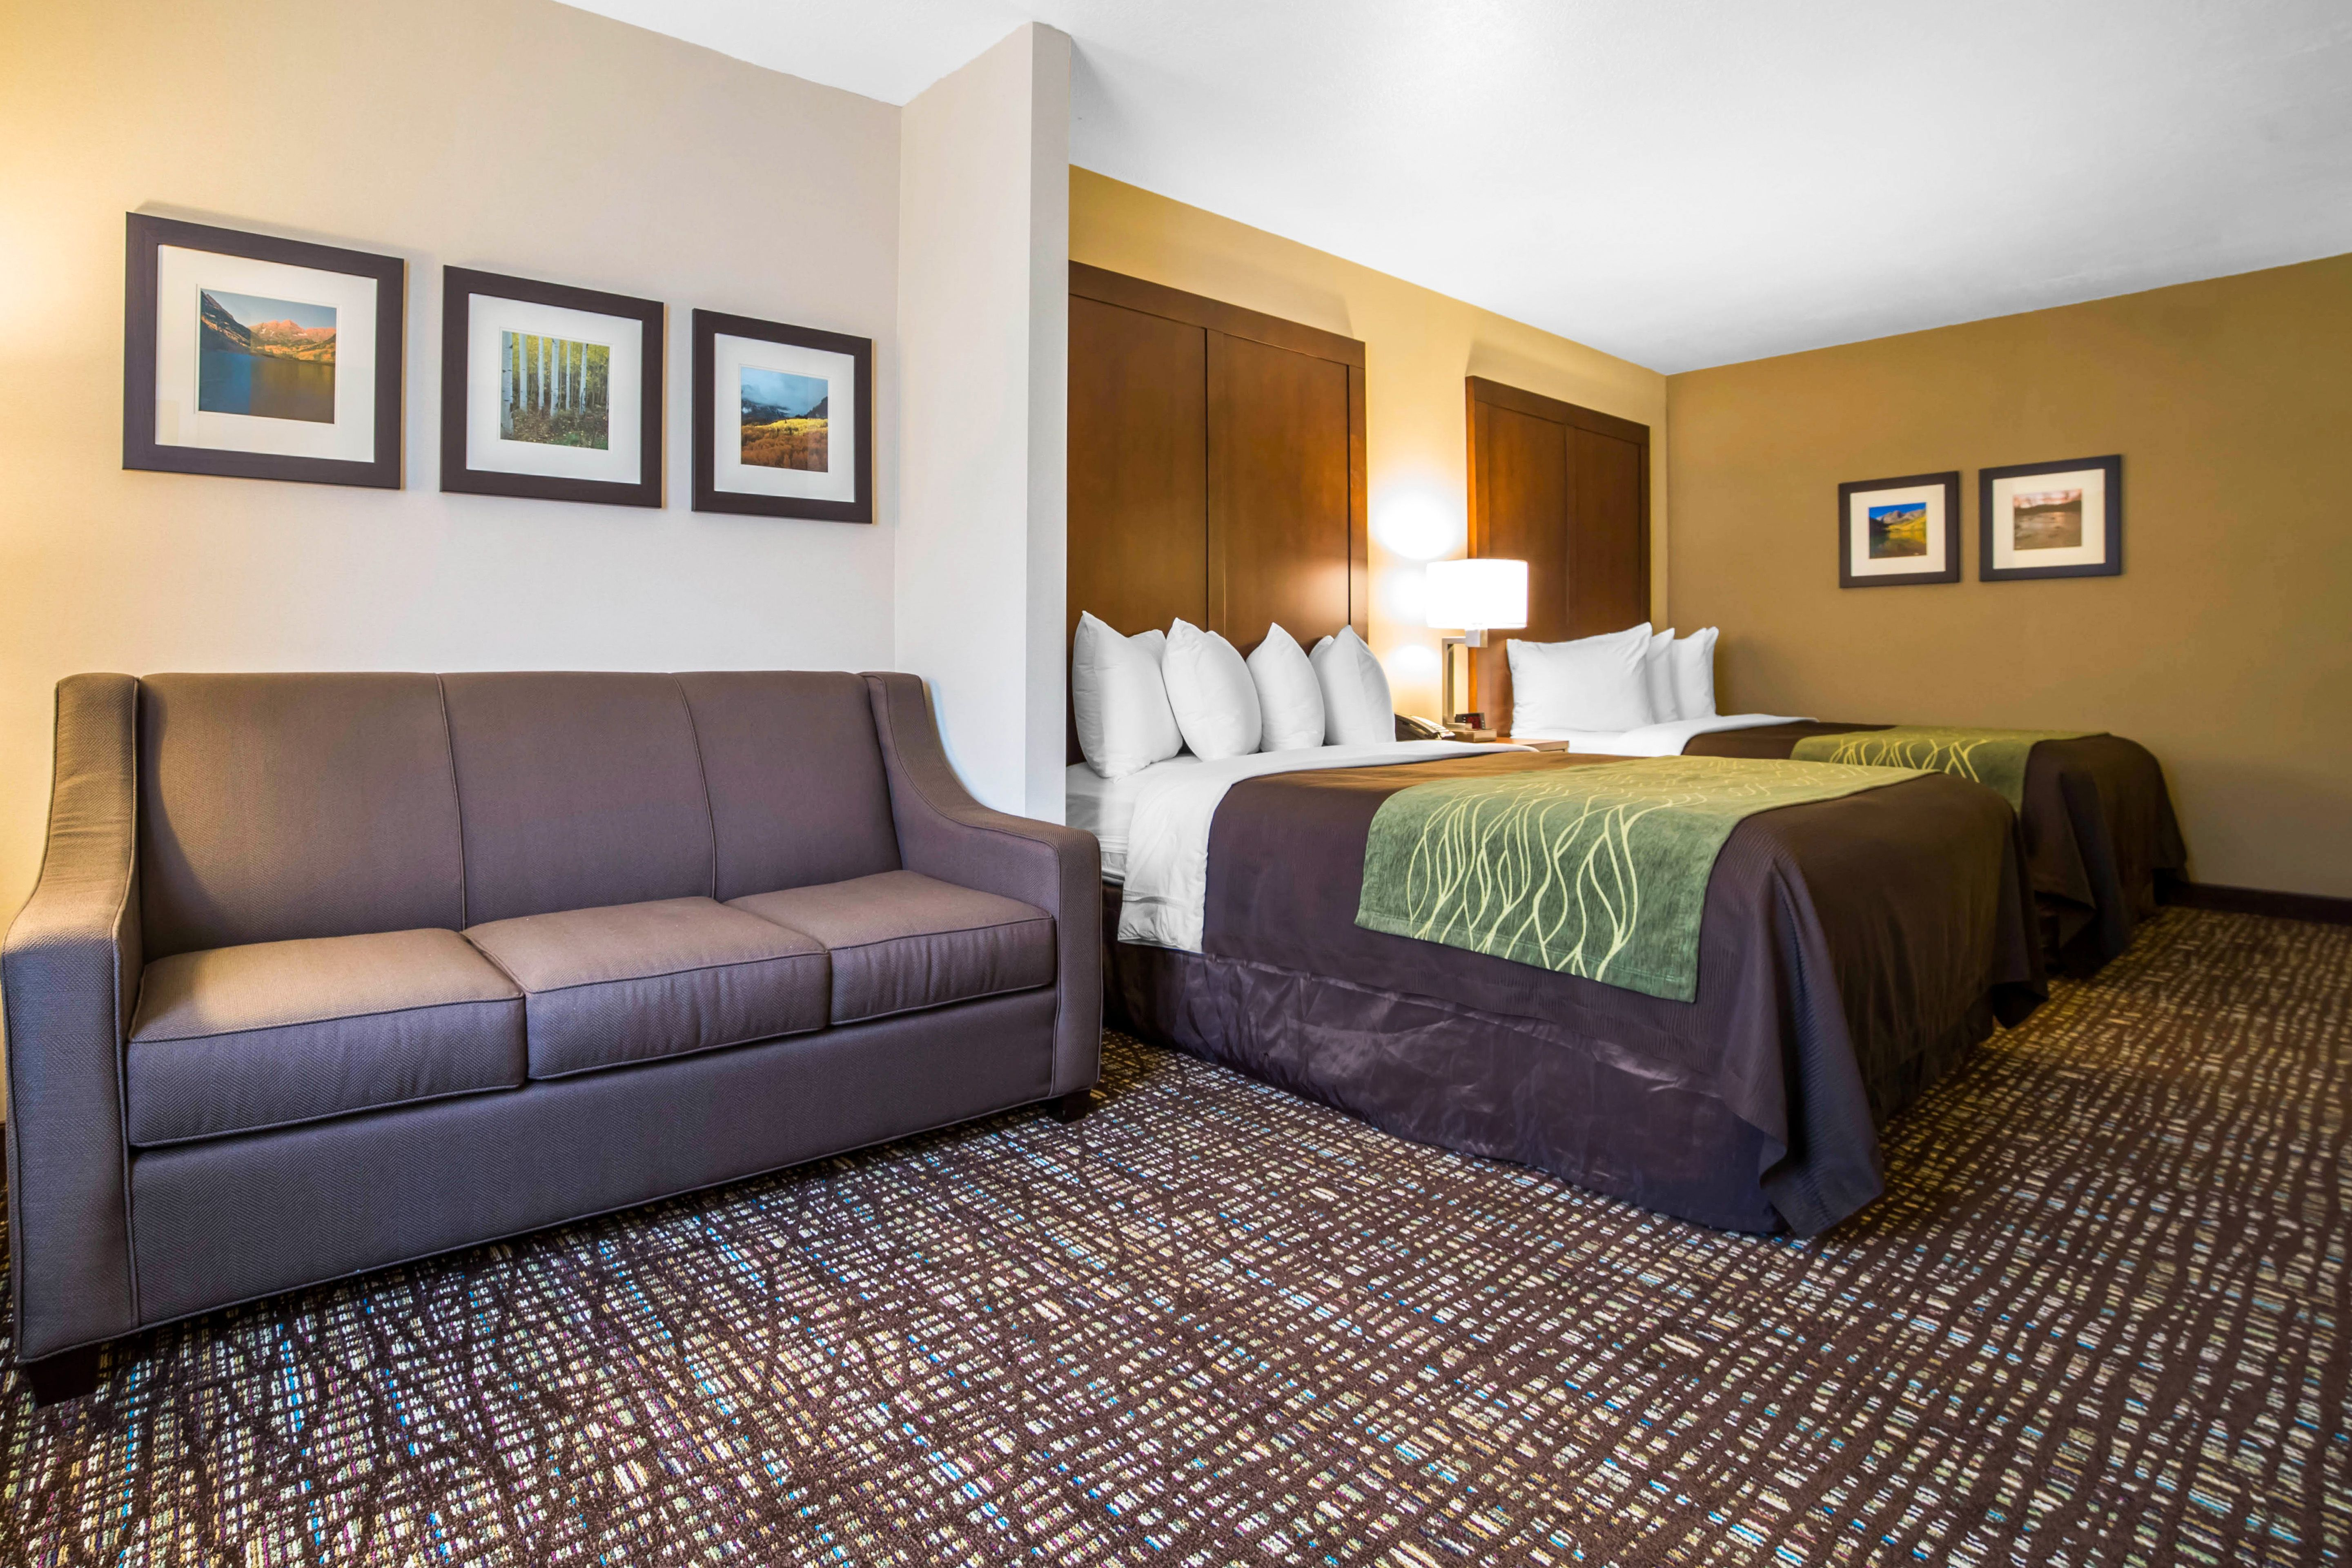 Enjoy Stay At Cozy Comfort Inn And Suites Hotel In Orem Near University Mall Uccu Center Bridal Veil Falls And B Comfort Inn And Suites Hotel Comforters Cozy